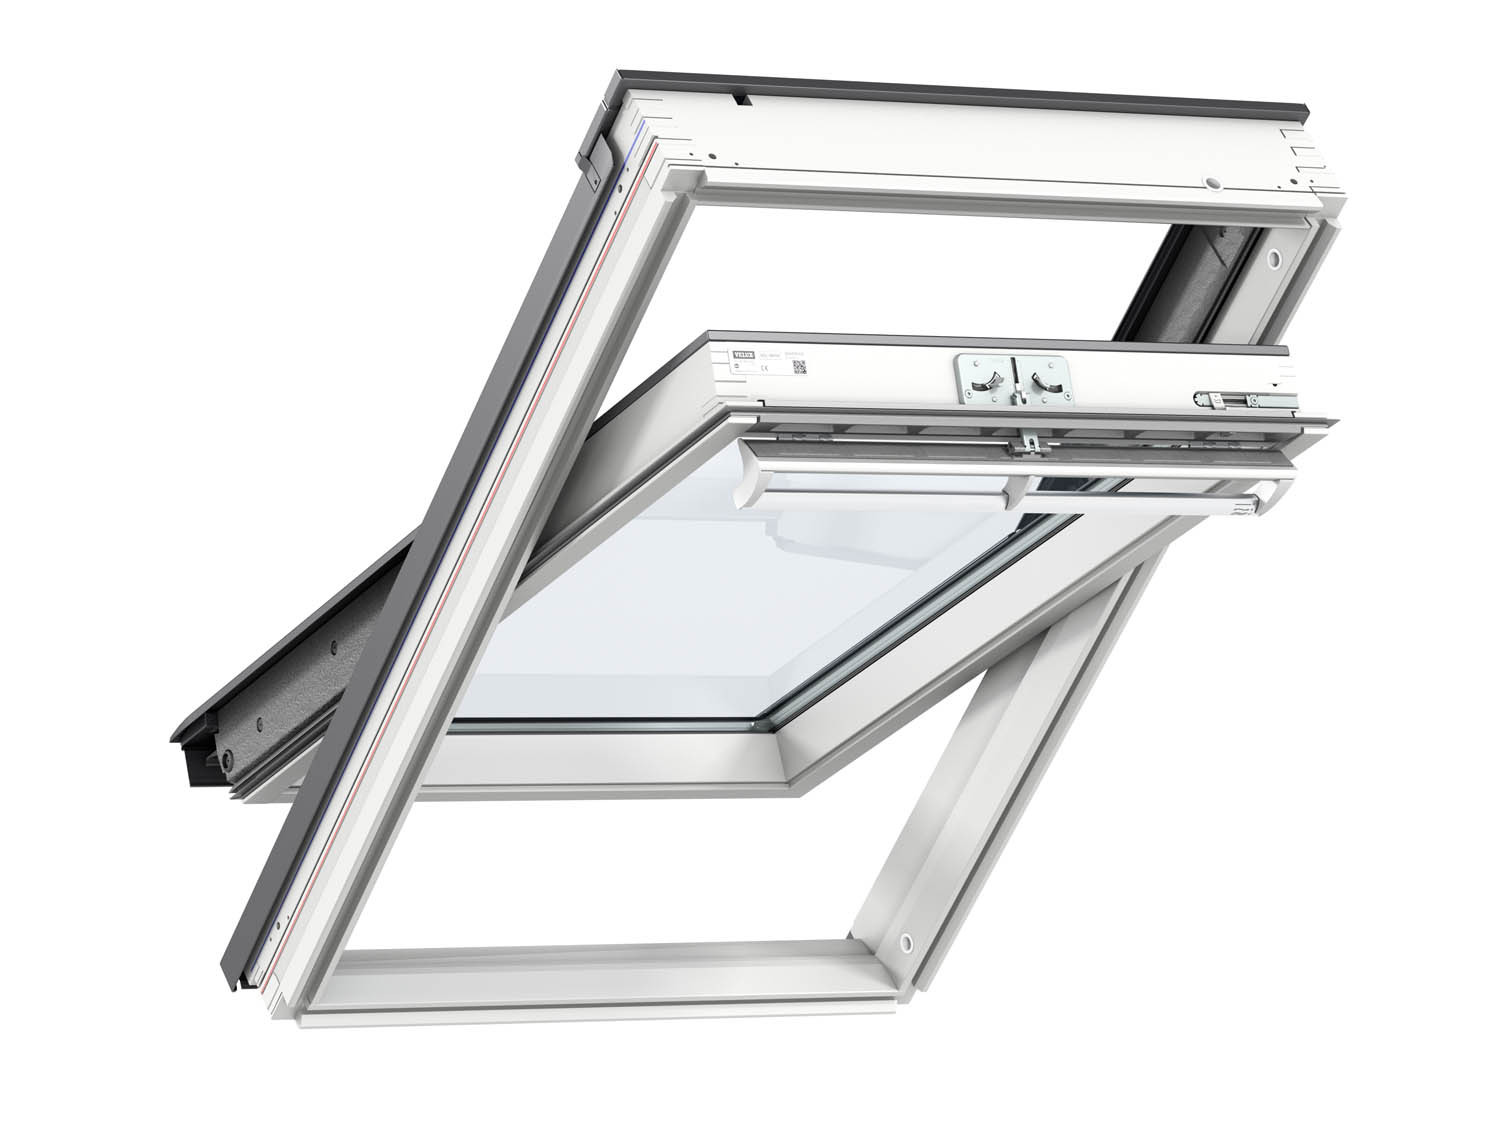 Velux 550mm x 980mm White Roof Window GGL2070 CK04